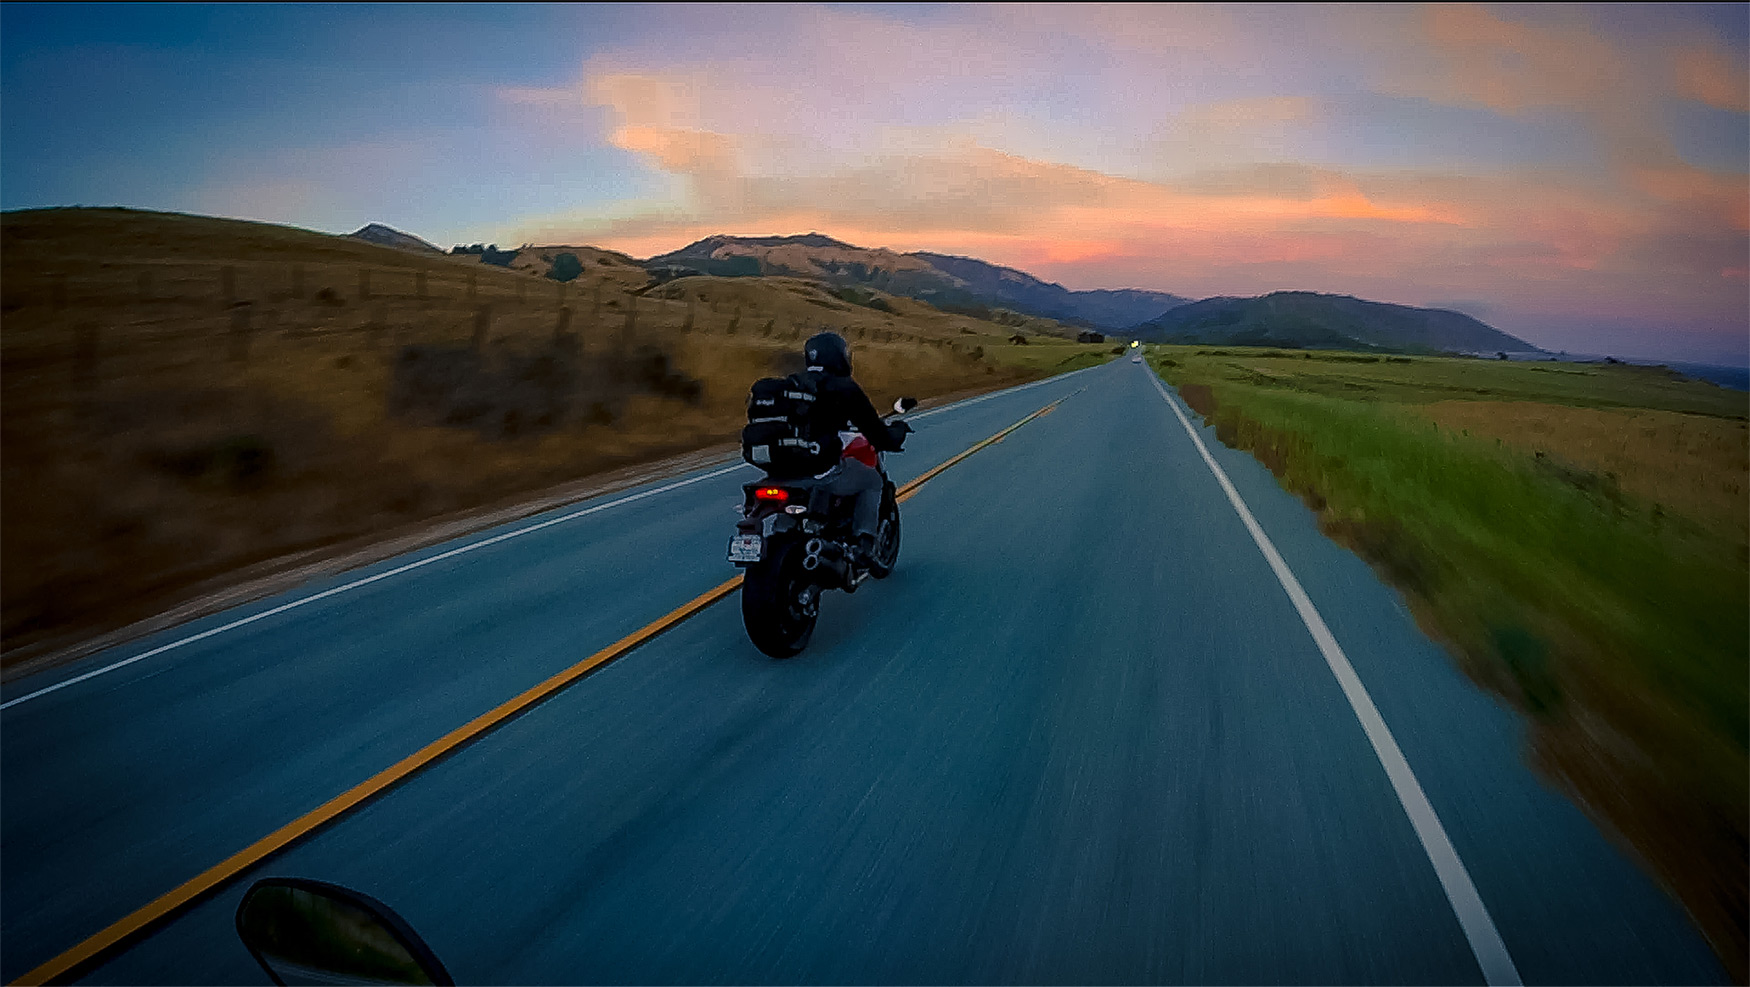 Riding Ducatis Down the Pacific Coast Highway